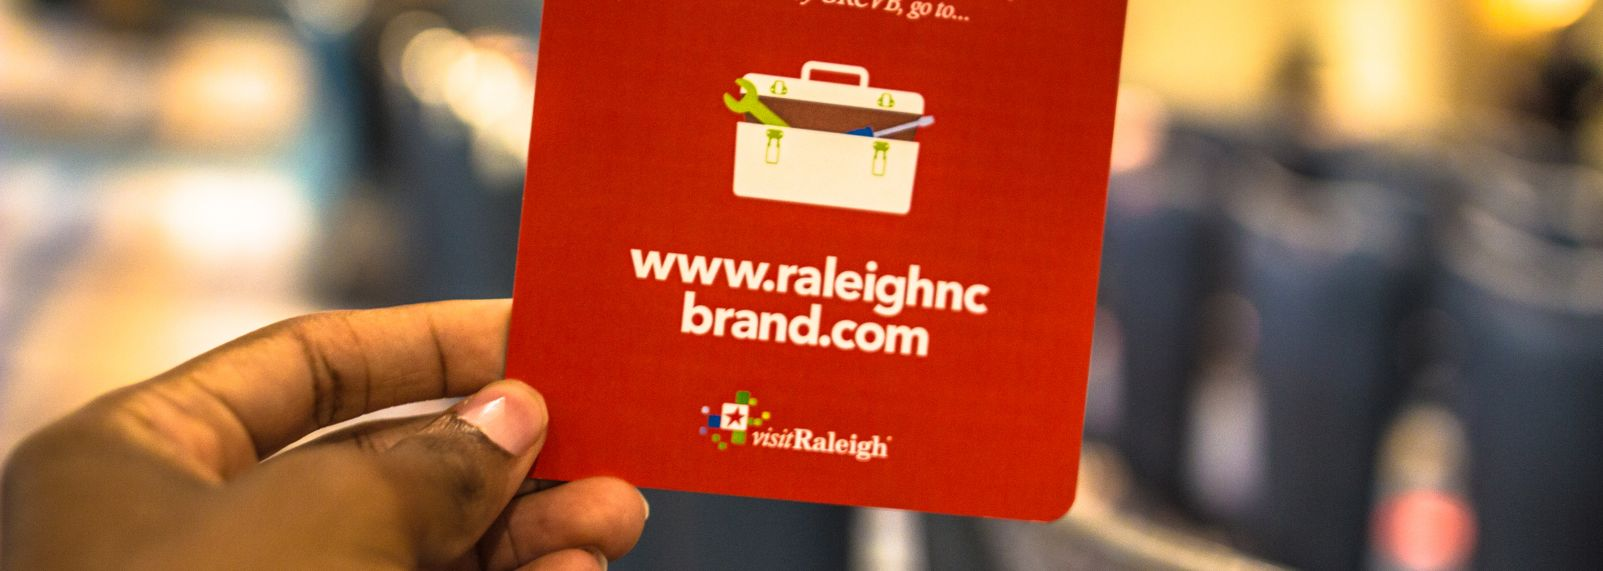 Raleigh north carolina brand kit destination branding malvernweather Gallery